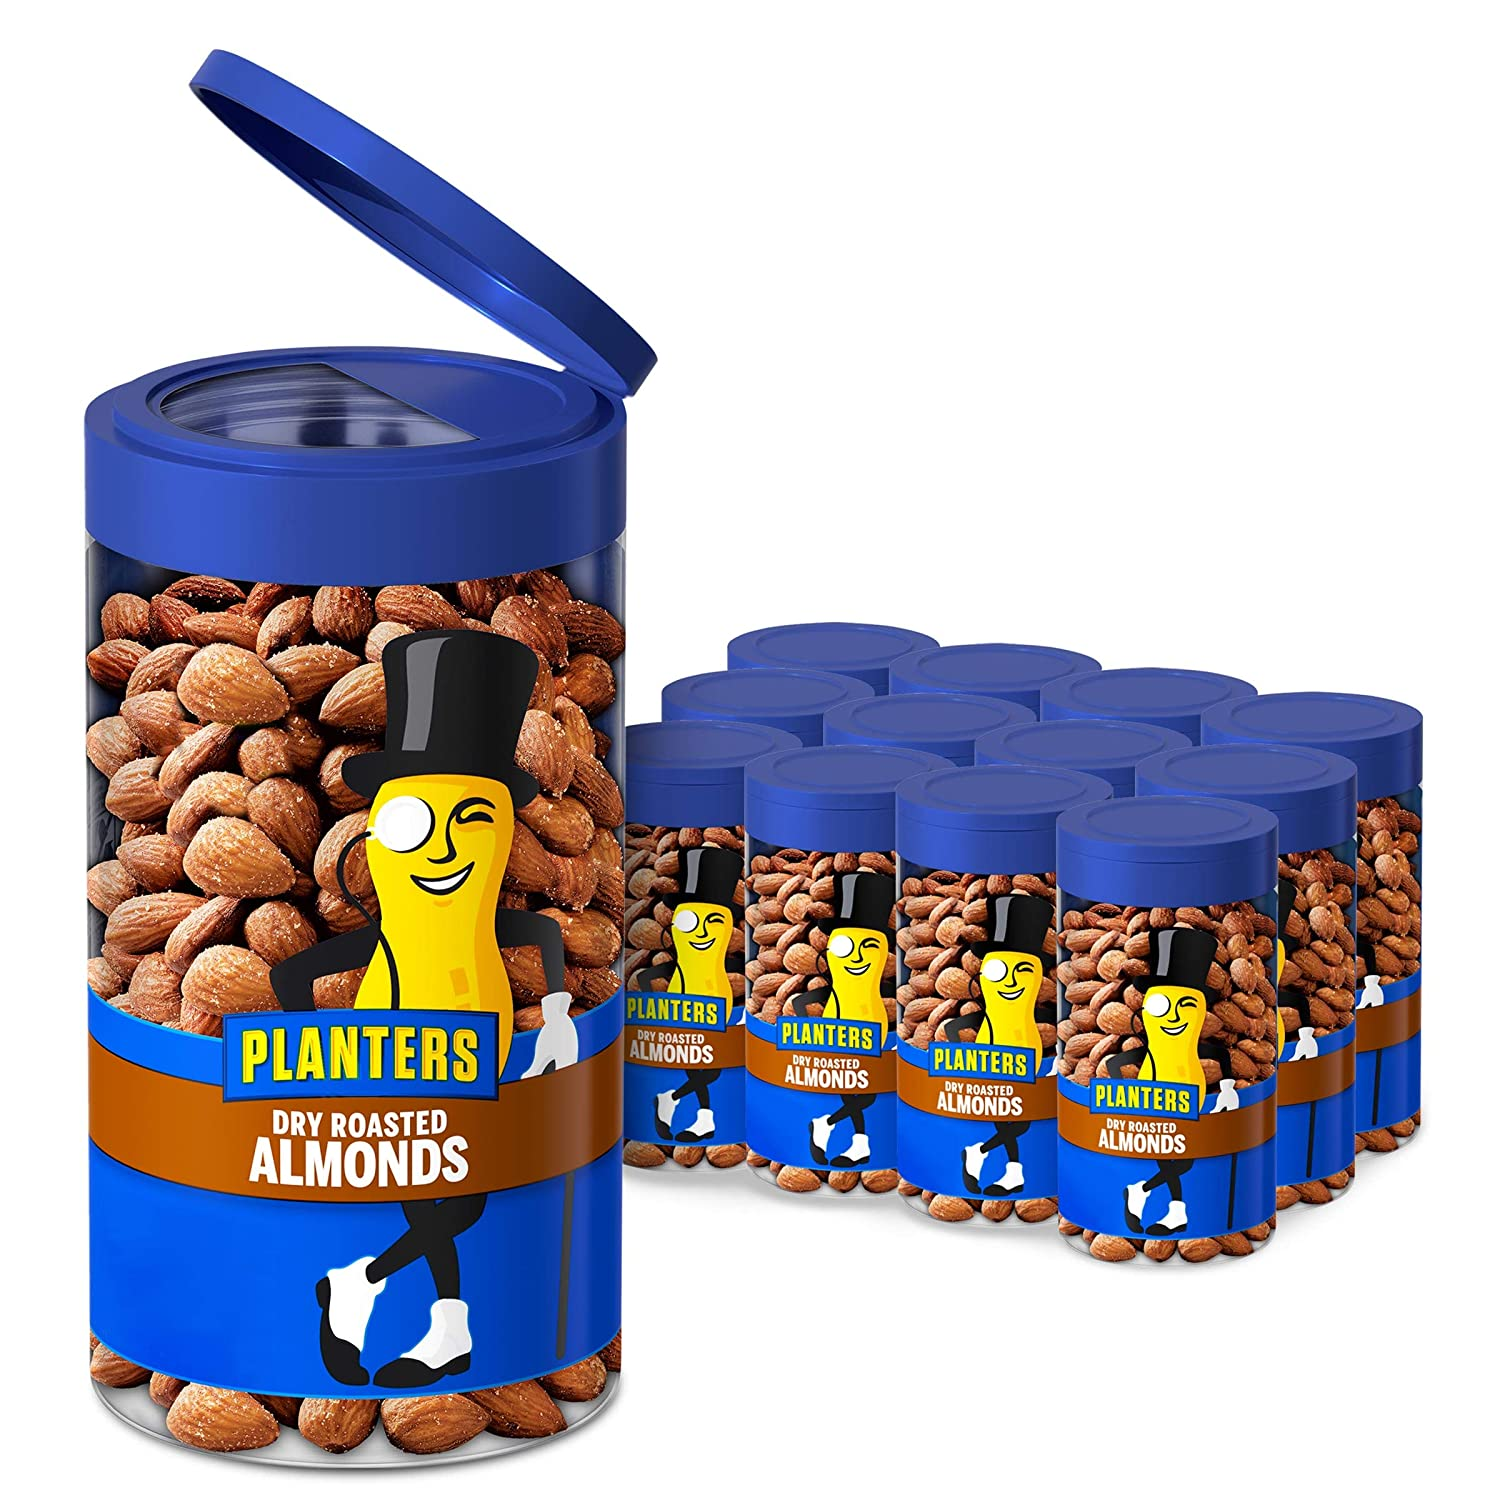 Planters Pop Regular discount Pour Dry Roasted Almonds Pack Jars 1 Spring new work of 6.5 oz